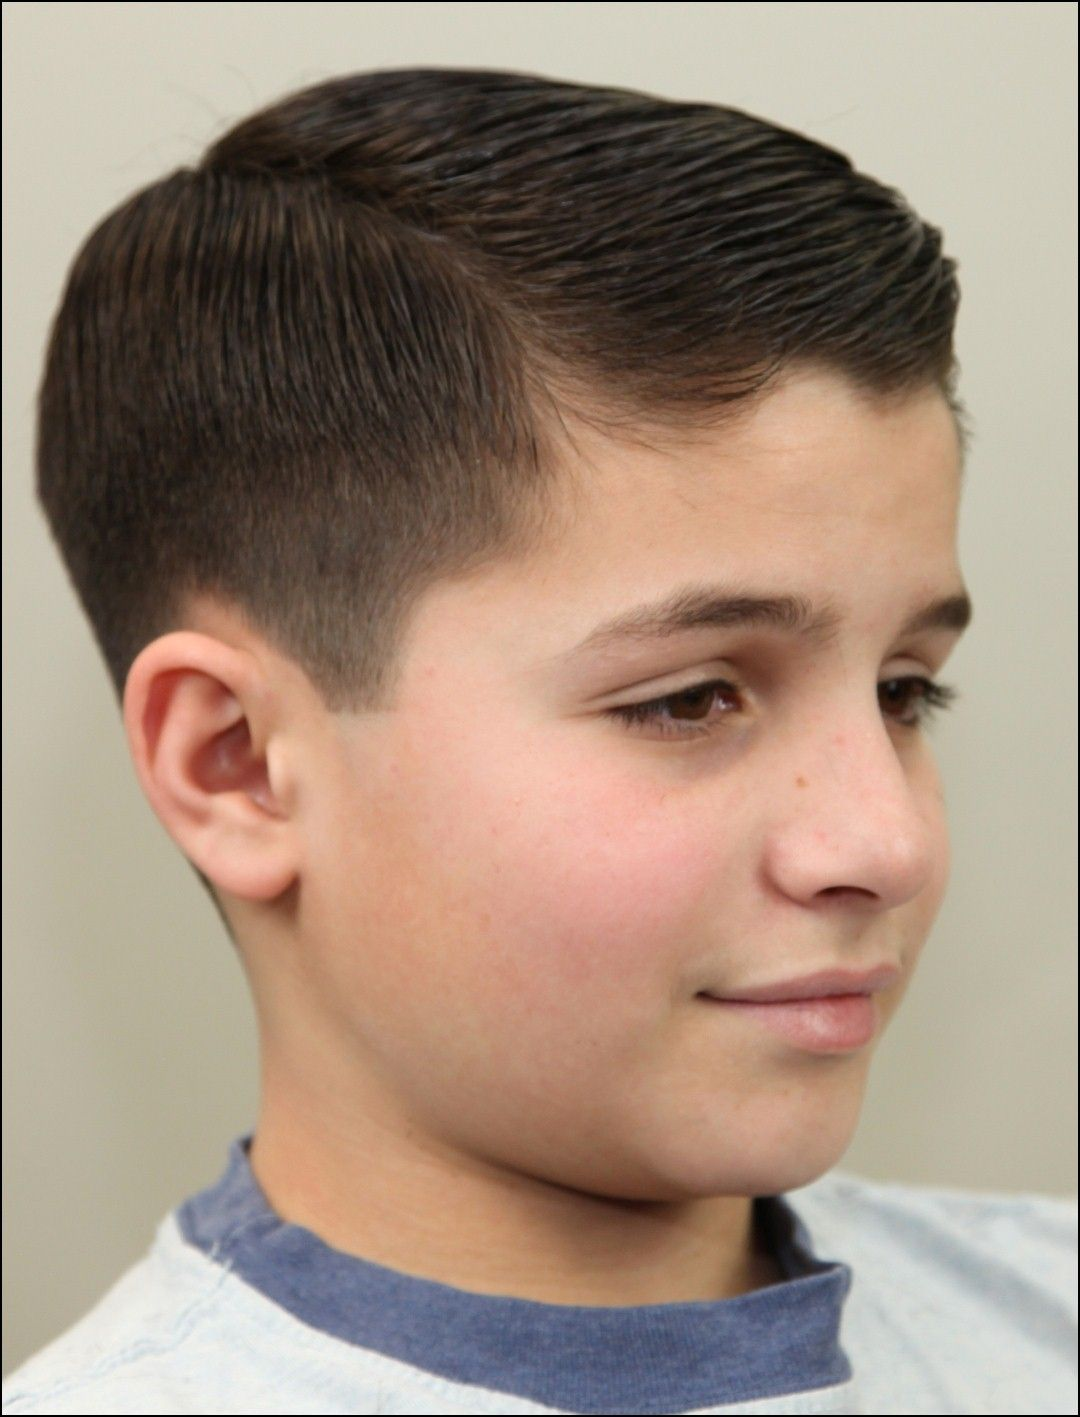 15 Year Old Hairstyles | Hairstyles Ideas | Pinterest | 15 years